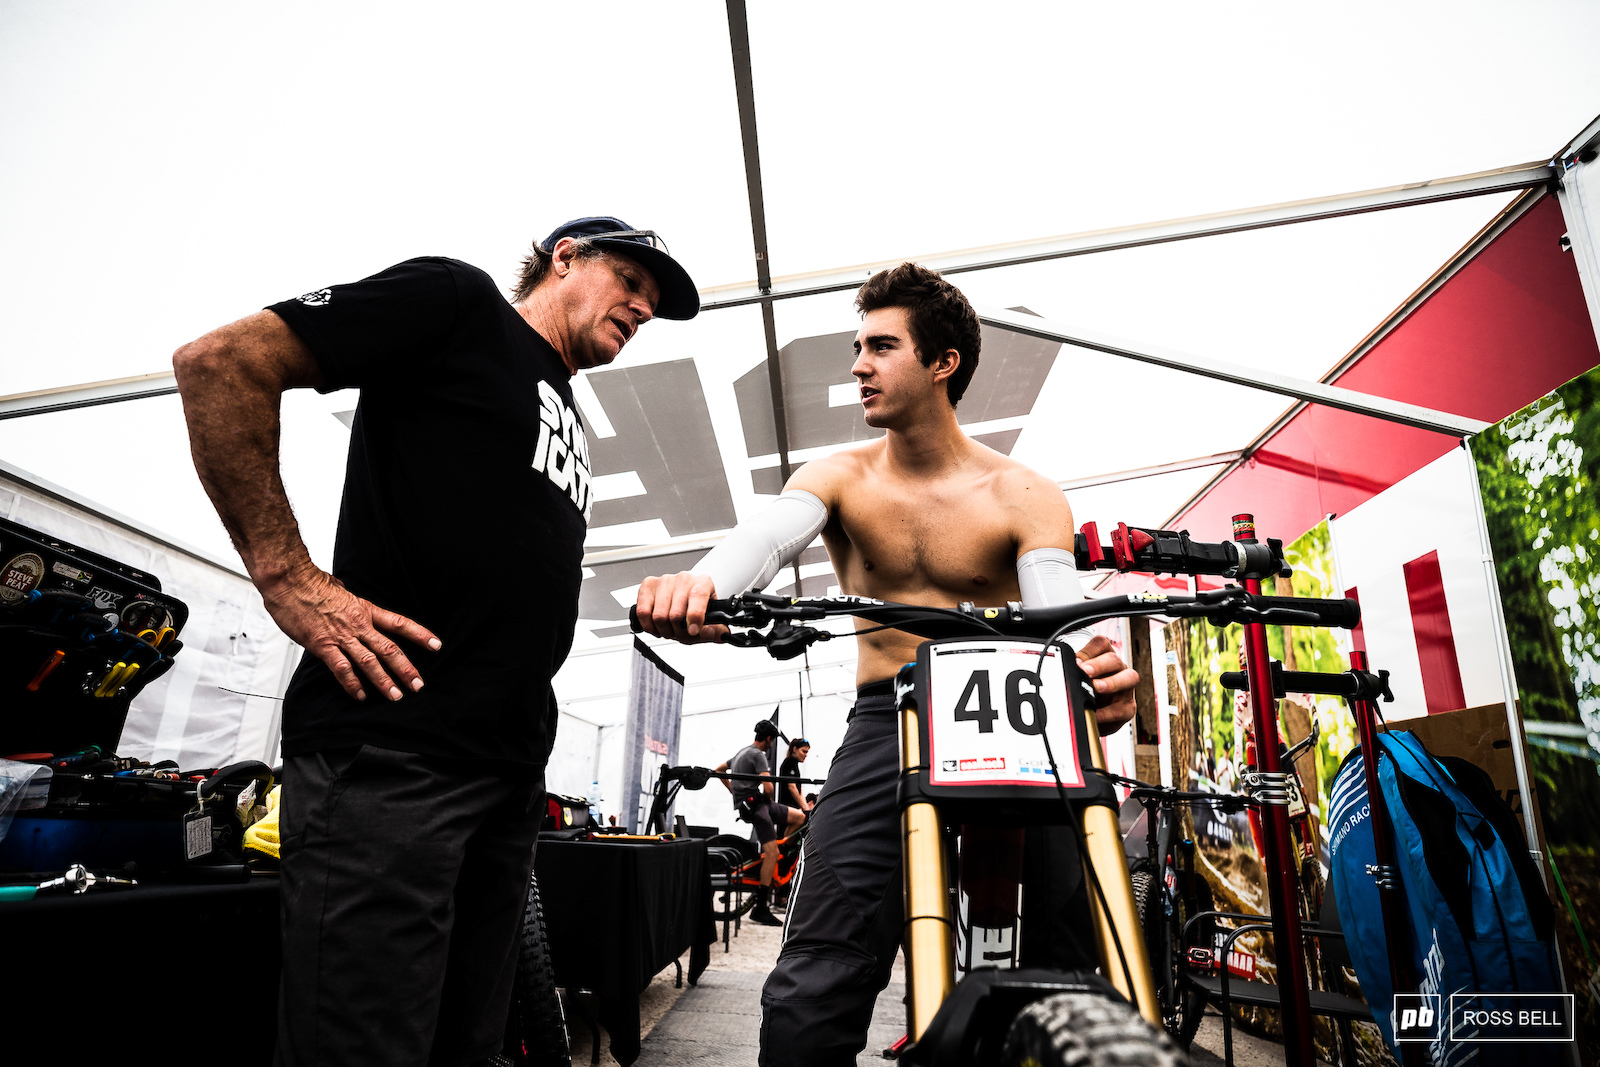 Luca Shaw and mechanic Dougy getting the V10 dialled in for first runs.